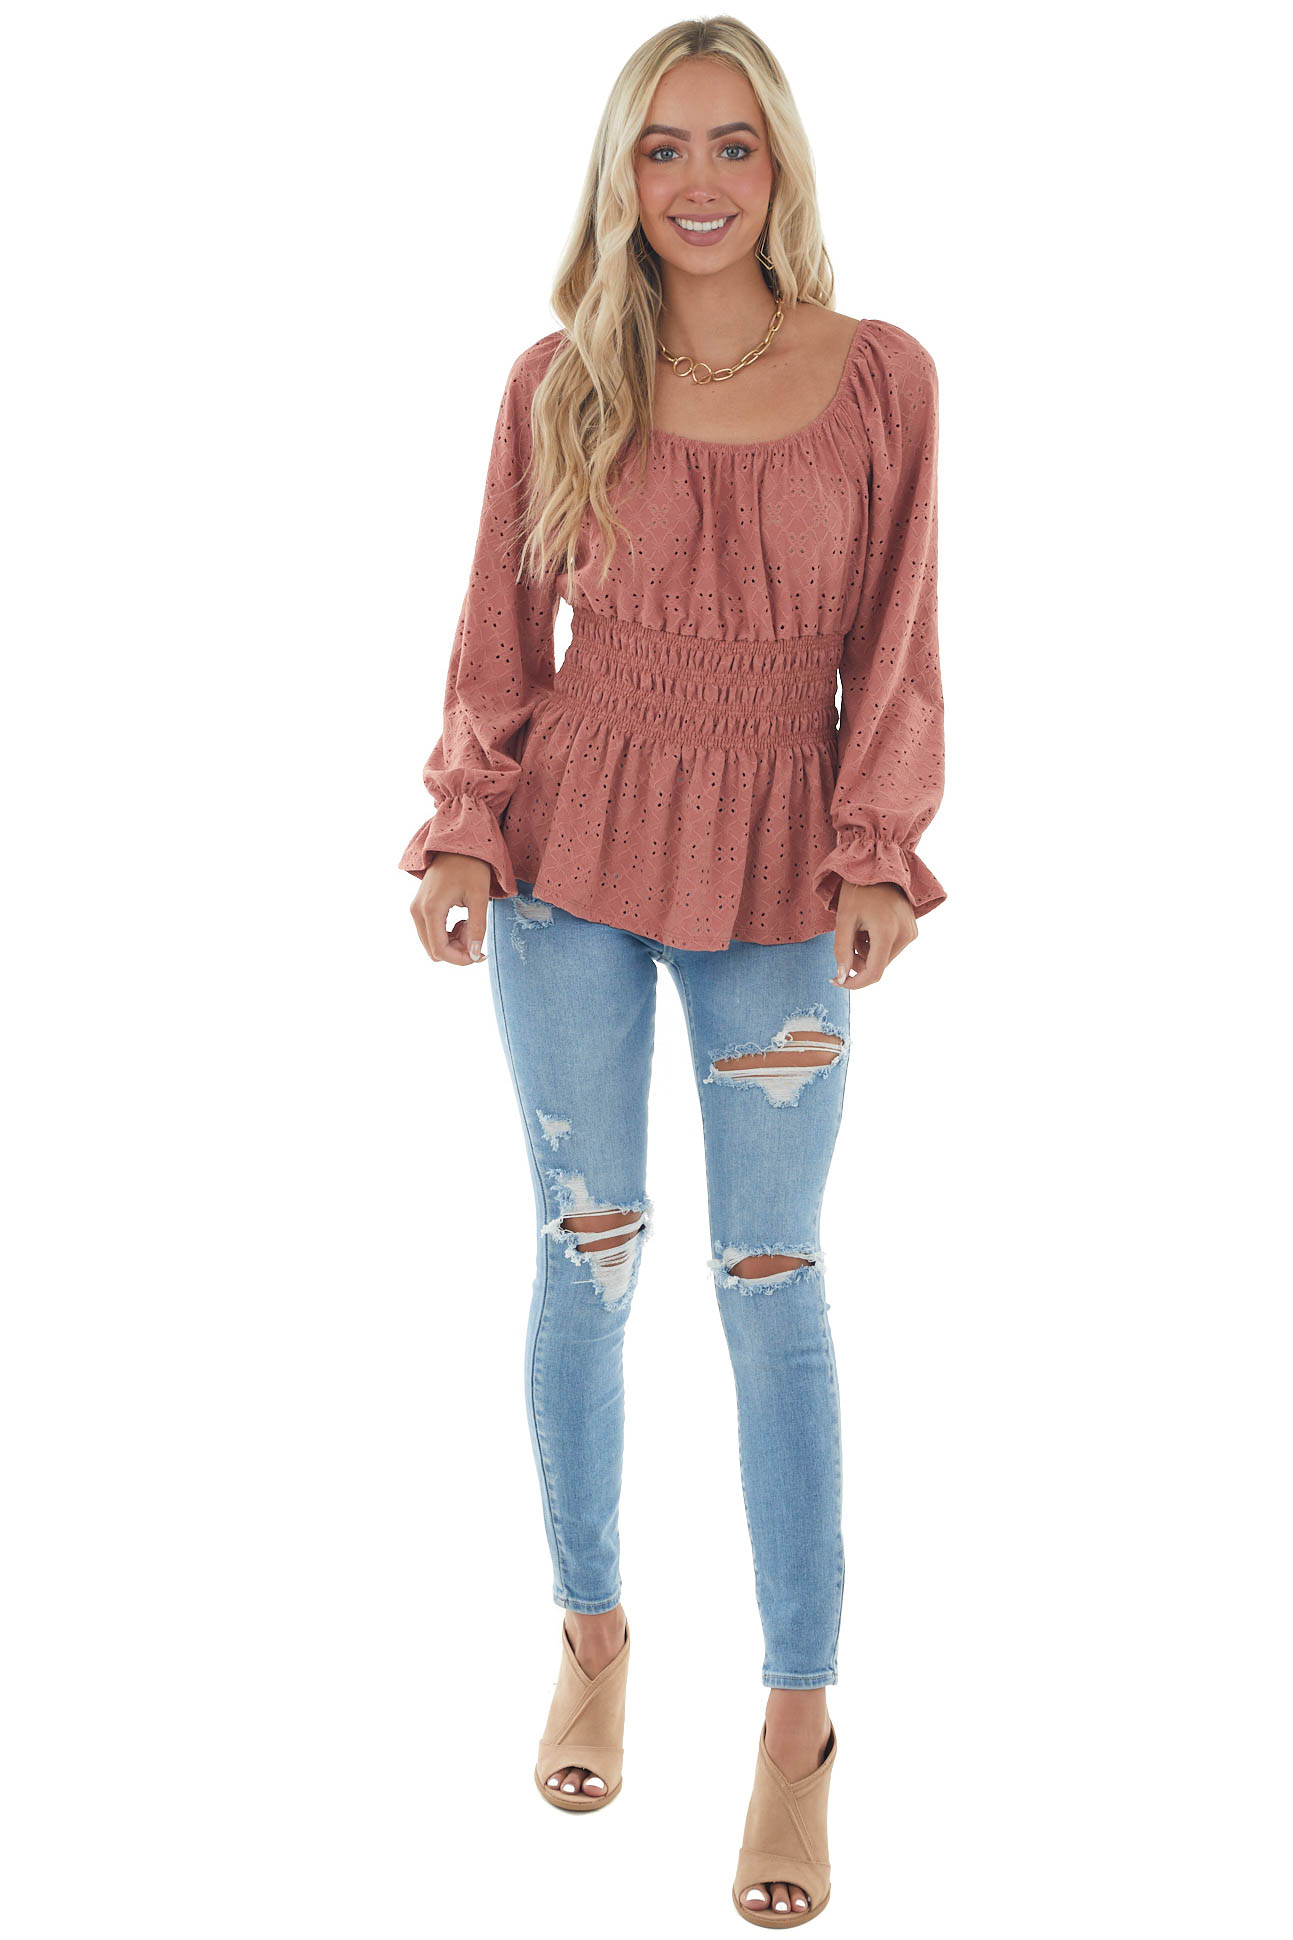 Ginger Square Neck Eyelet Lace Long Sleeve Top